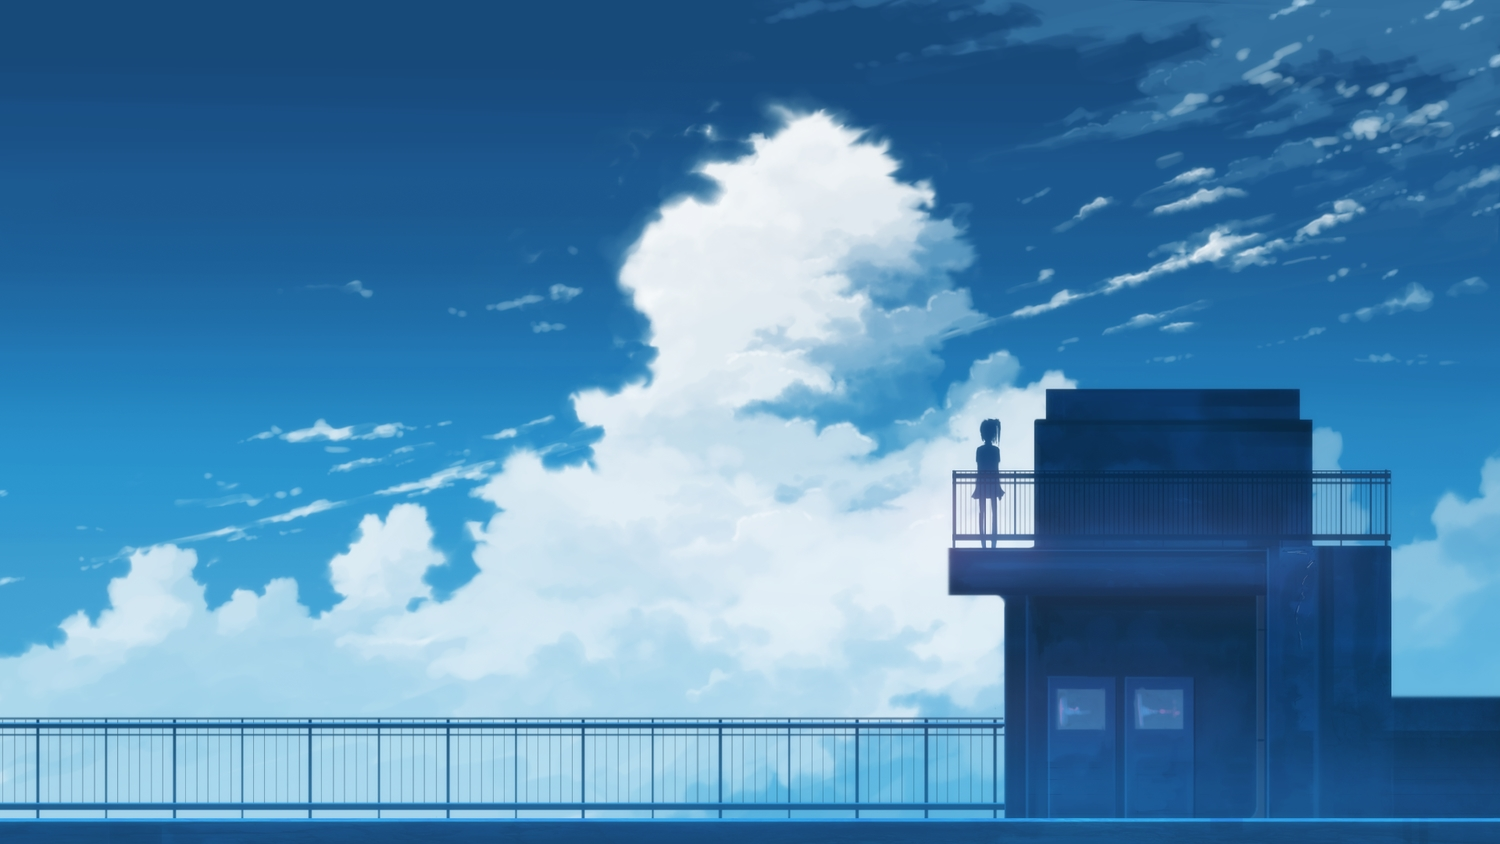 clouds hati_98 original ponytail rooftop scenic silhouette sky